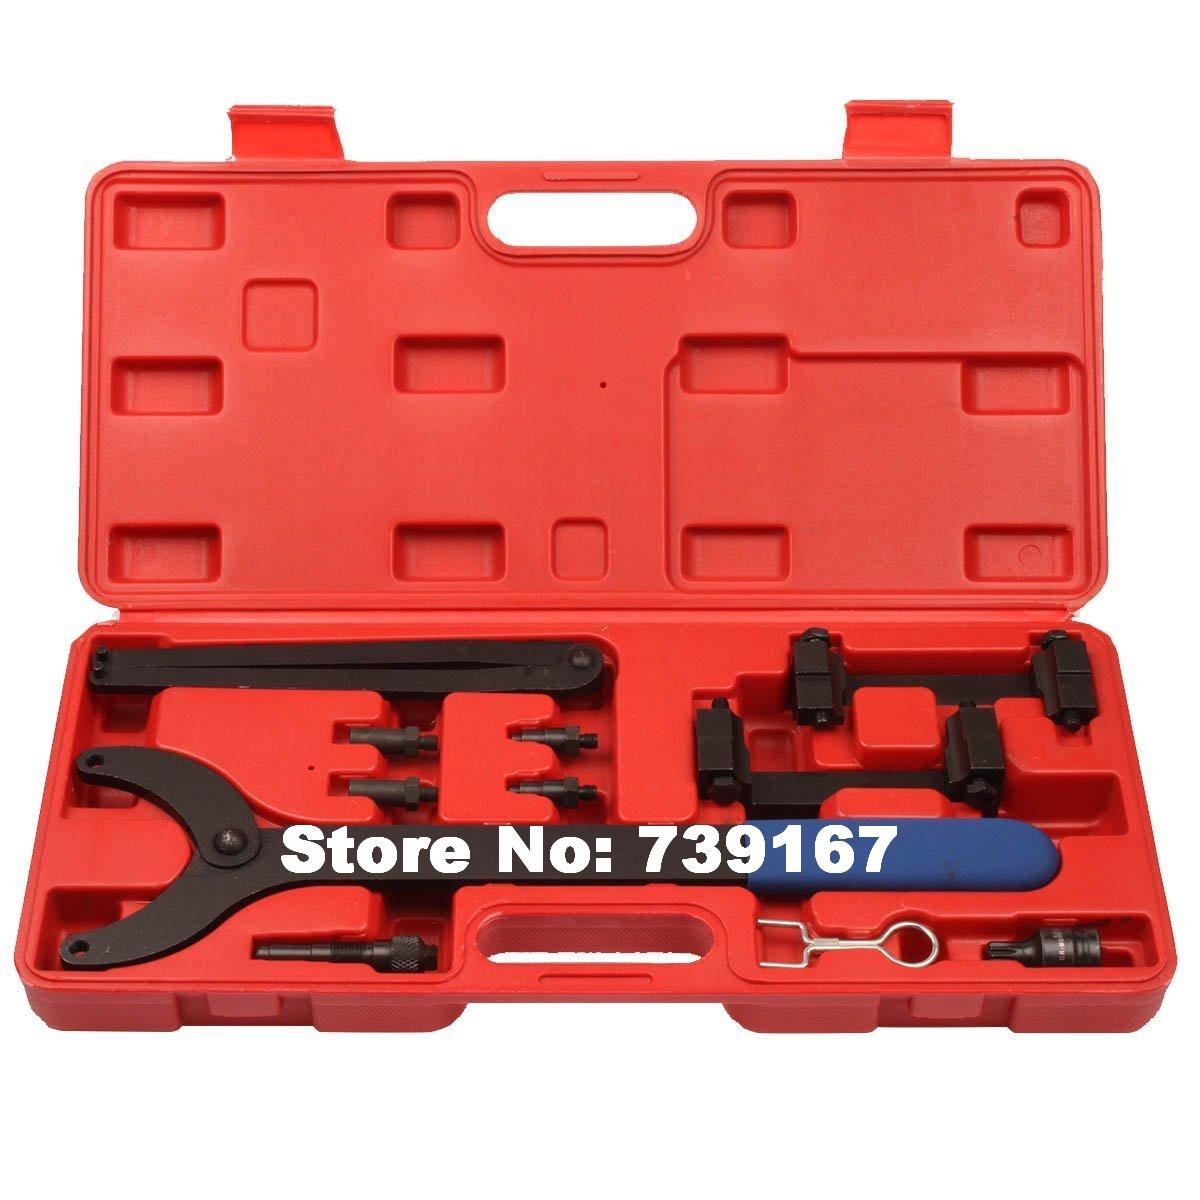 Auto Engine Timing Camshaft Locking Alignment Removal Repair Garage Tools For Audi A2 A3 A4 A6 A8 2.4/3.2L V6 FSI ST0169 camshaft pulley wrench holder for subaru forester 3pcs set engine timing belt remove and install repair toolkit